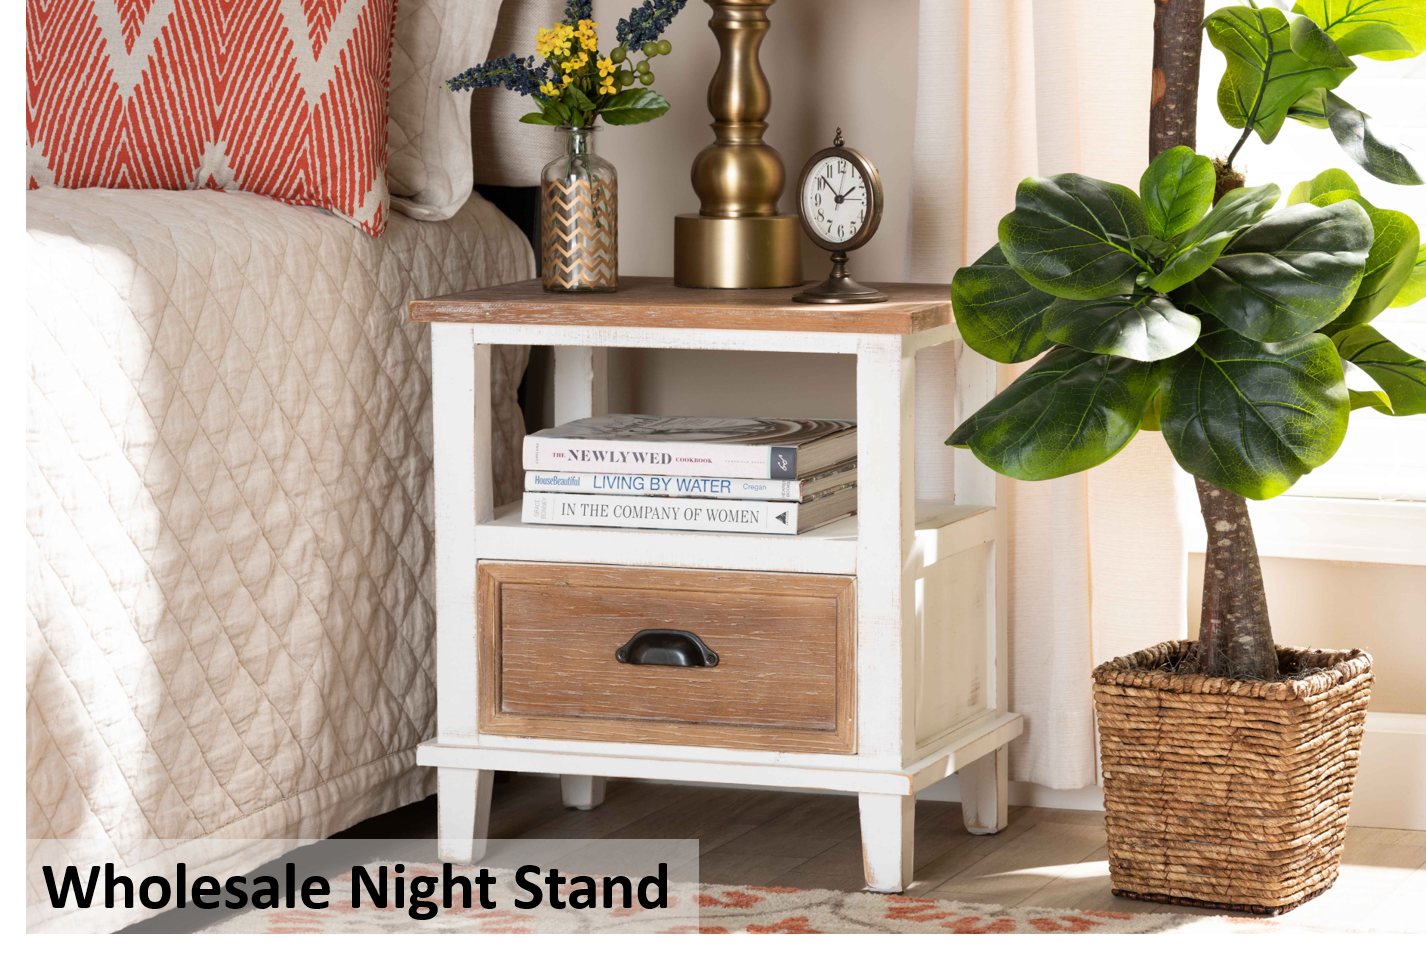 Wholesale Night Stand